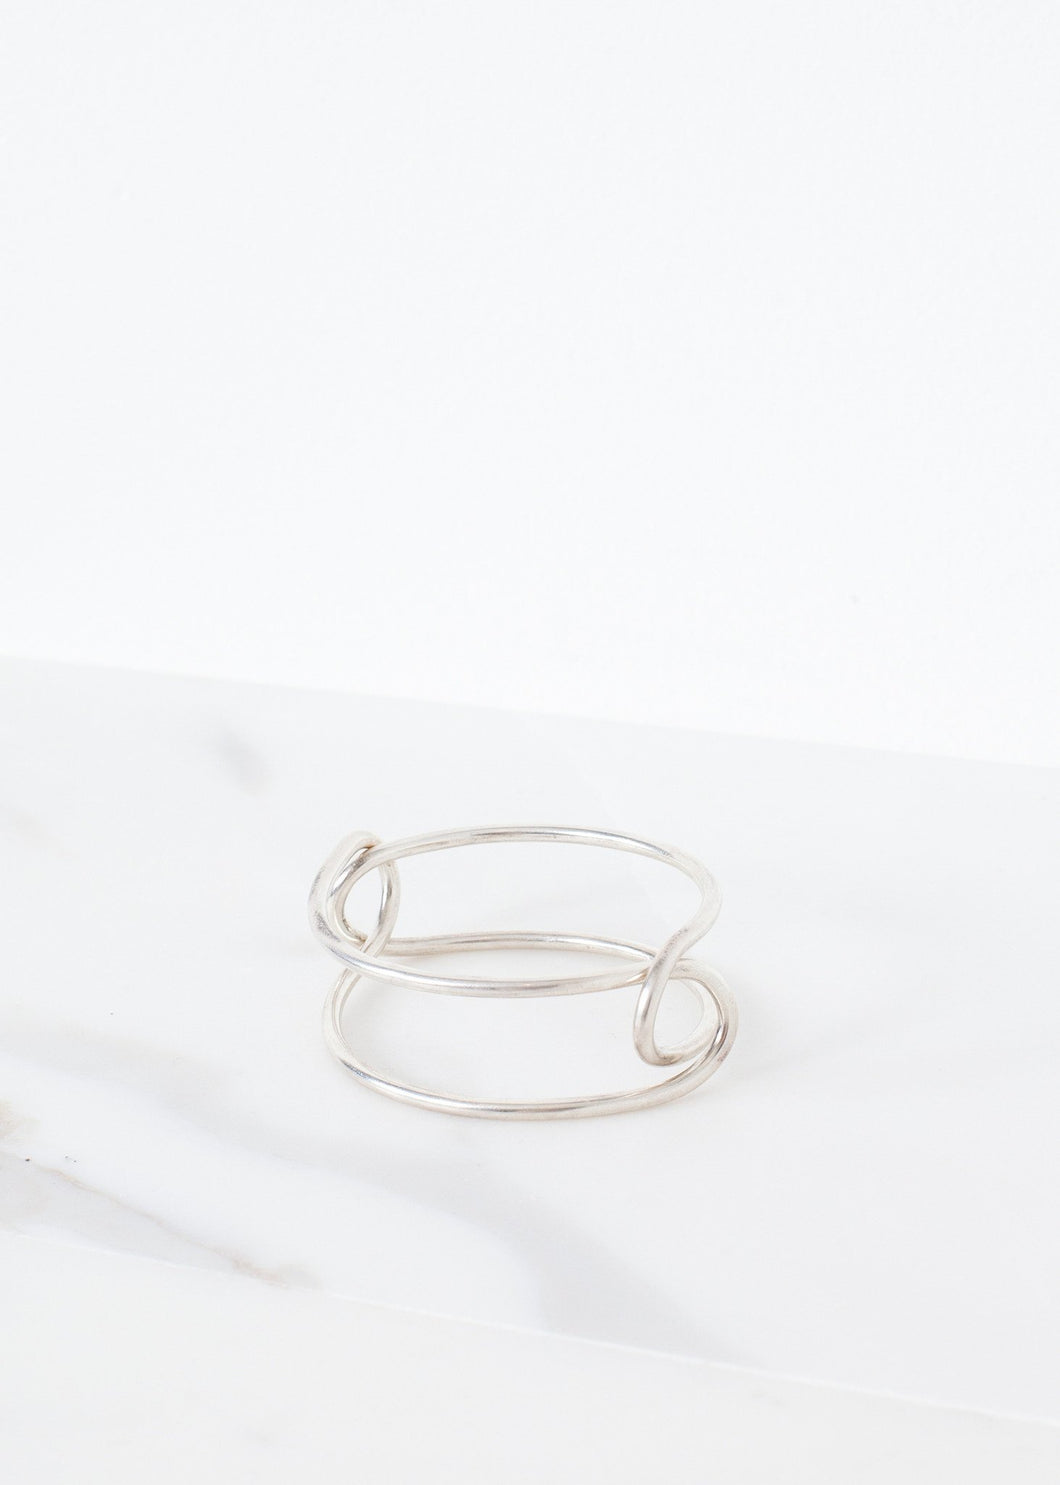 Bracelet 84 in Polished Silver